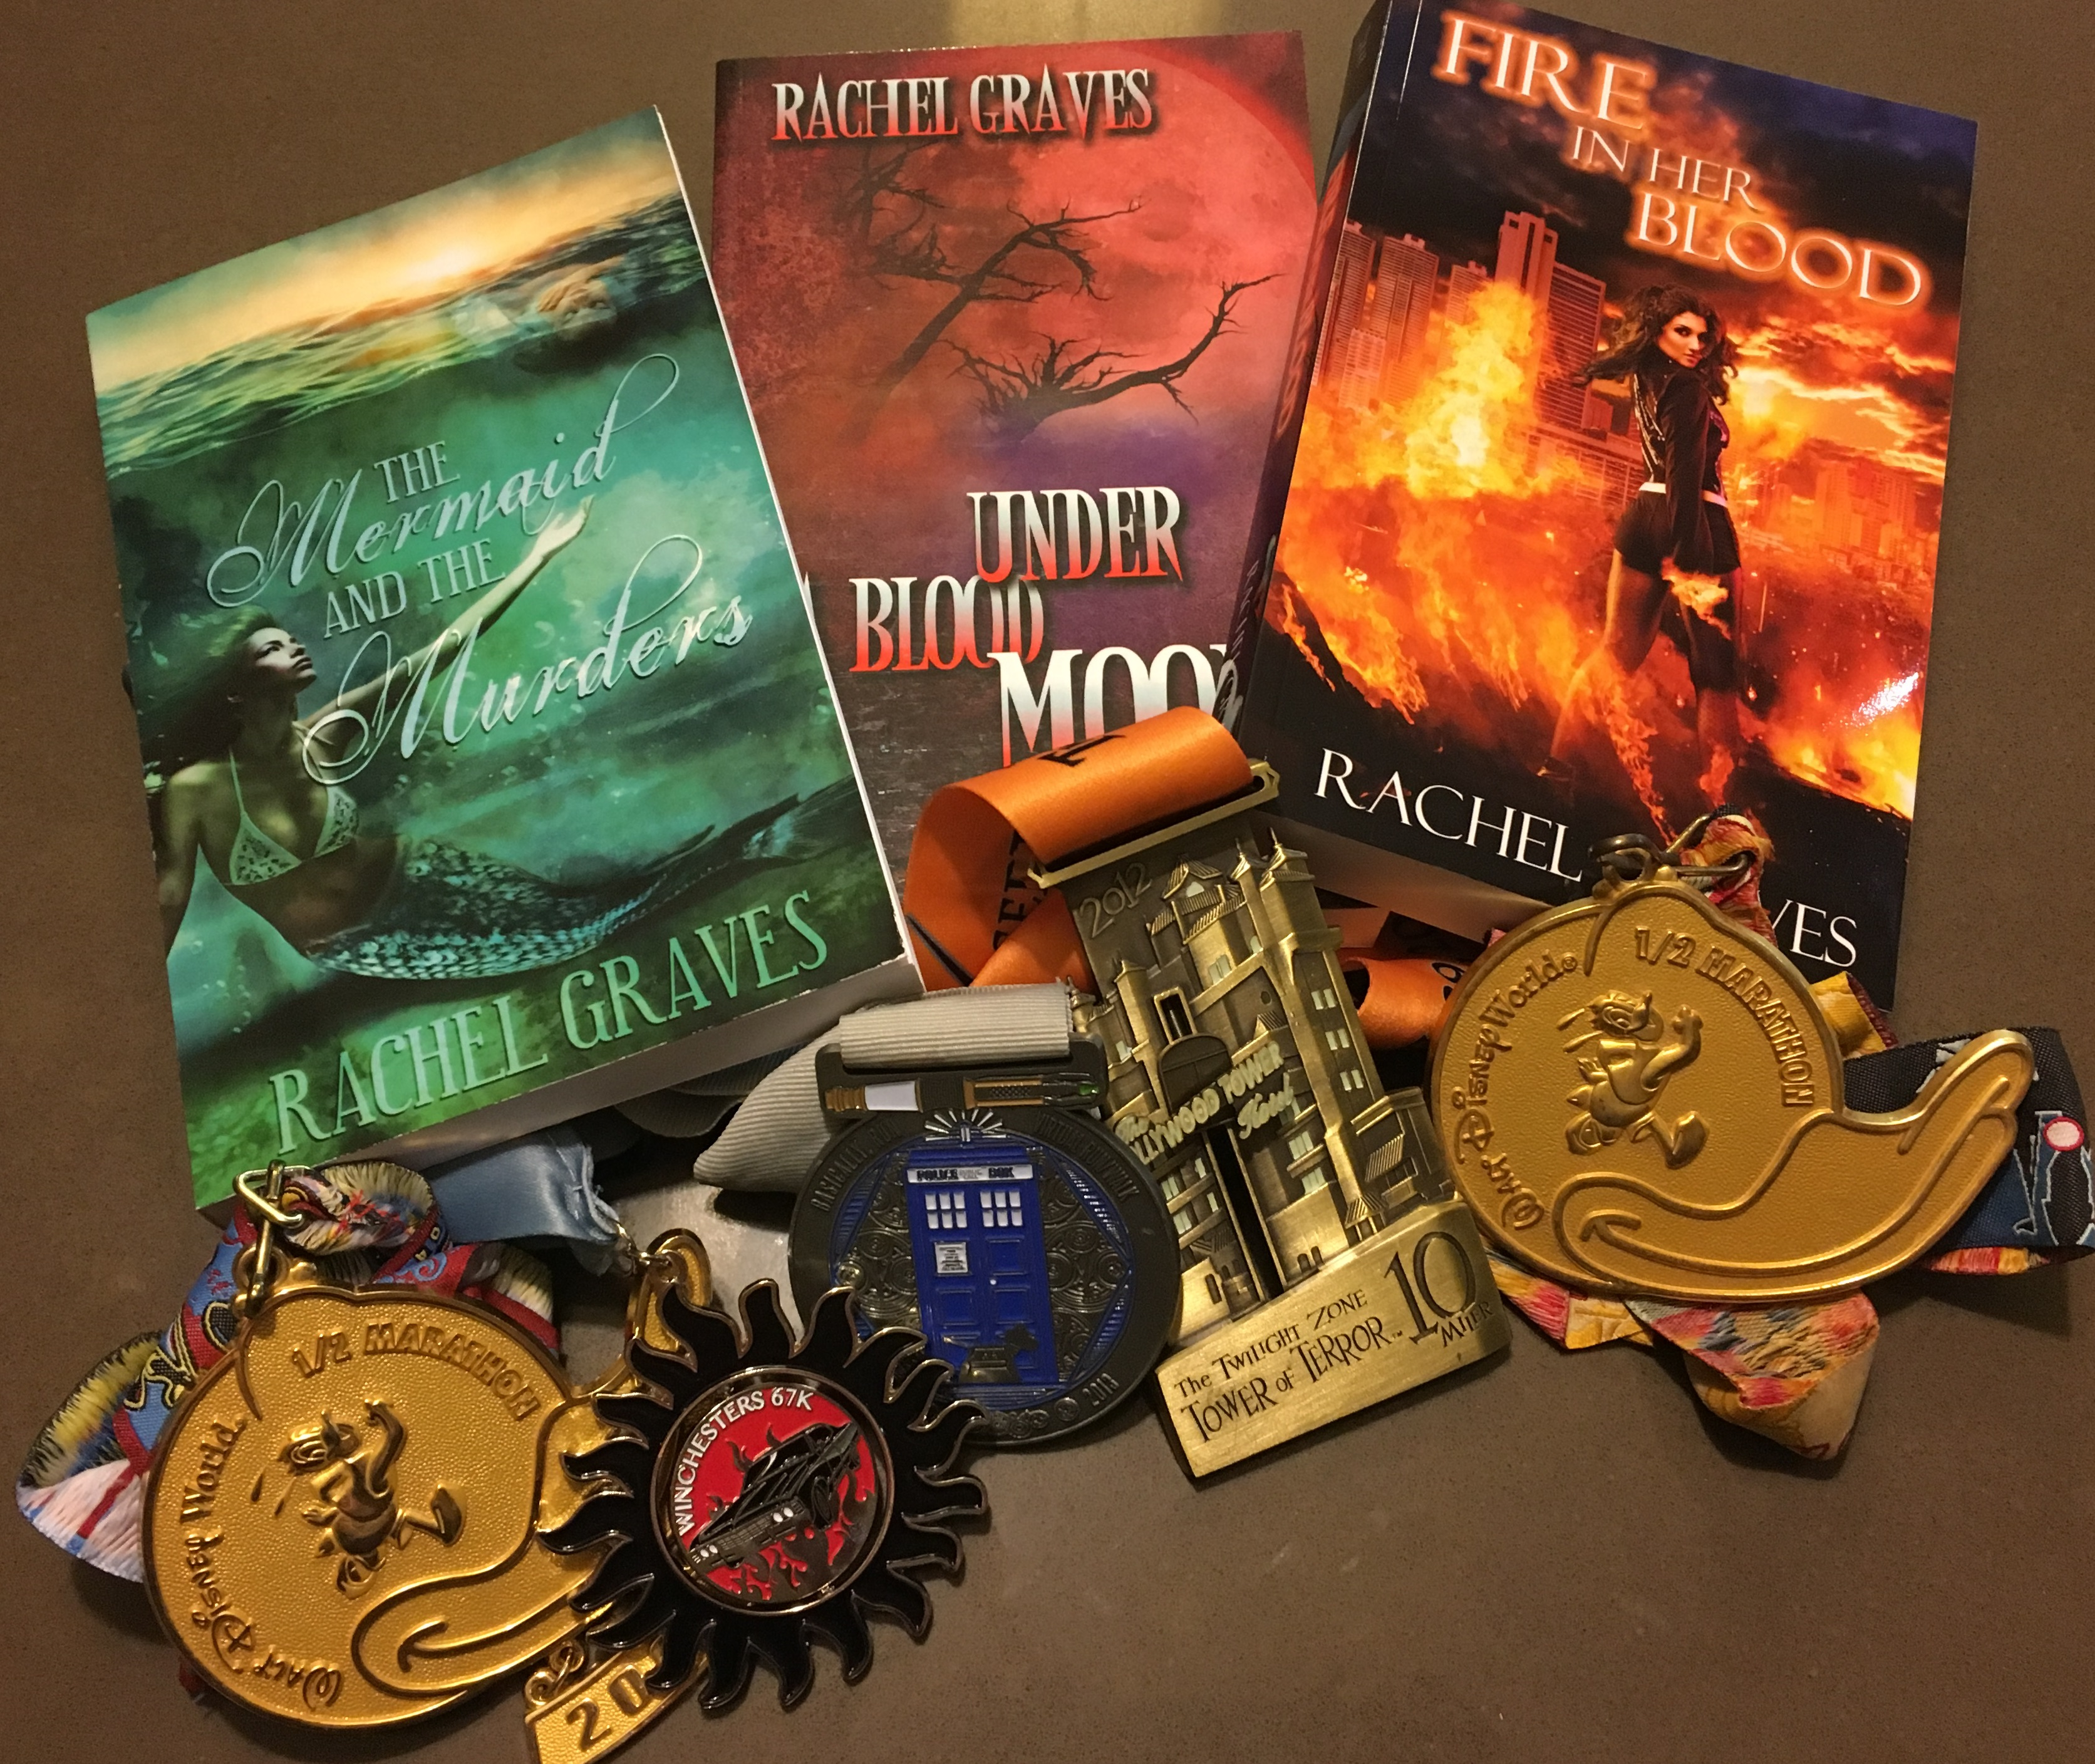 A stack of my published novels and several medals from races I've finished